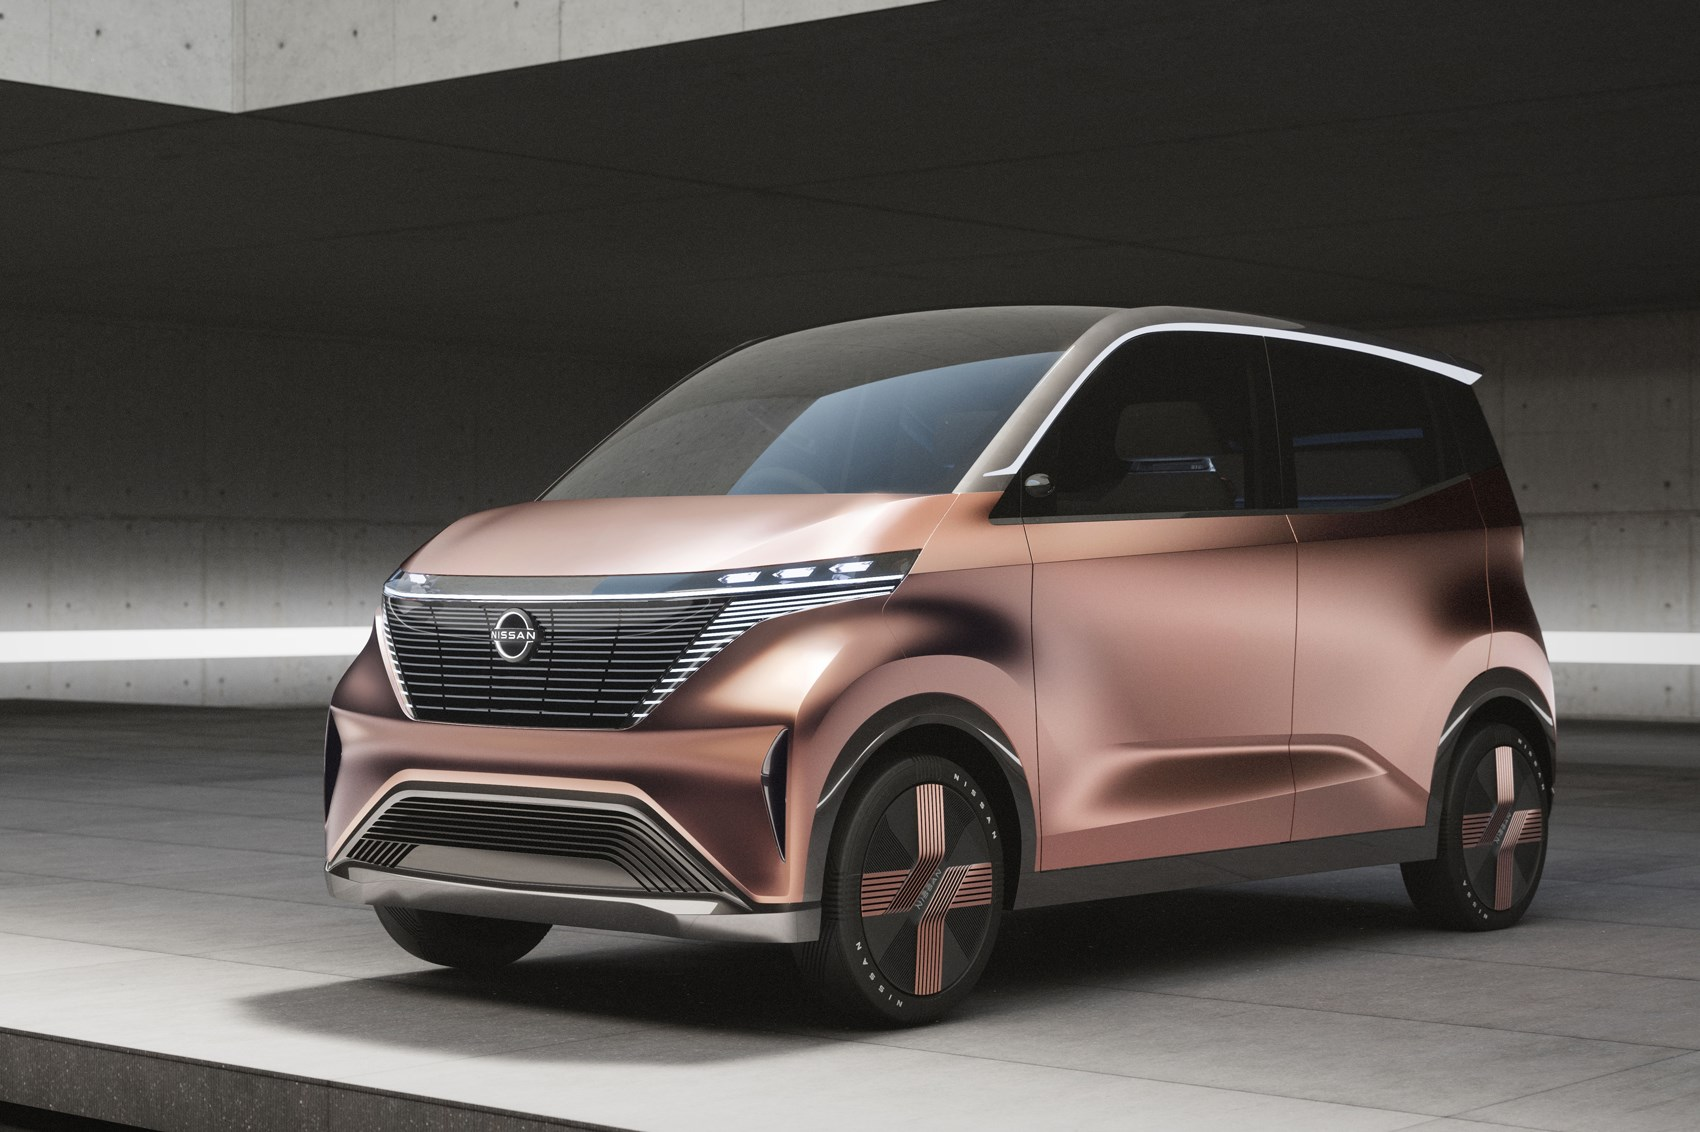 Nissan showed a concept electric minivan